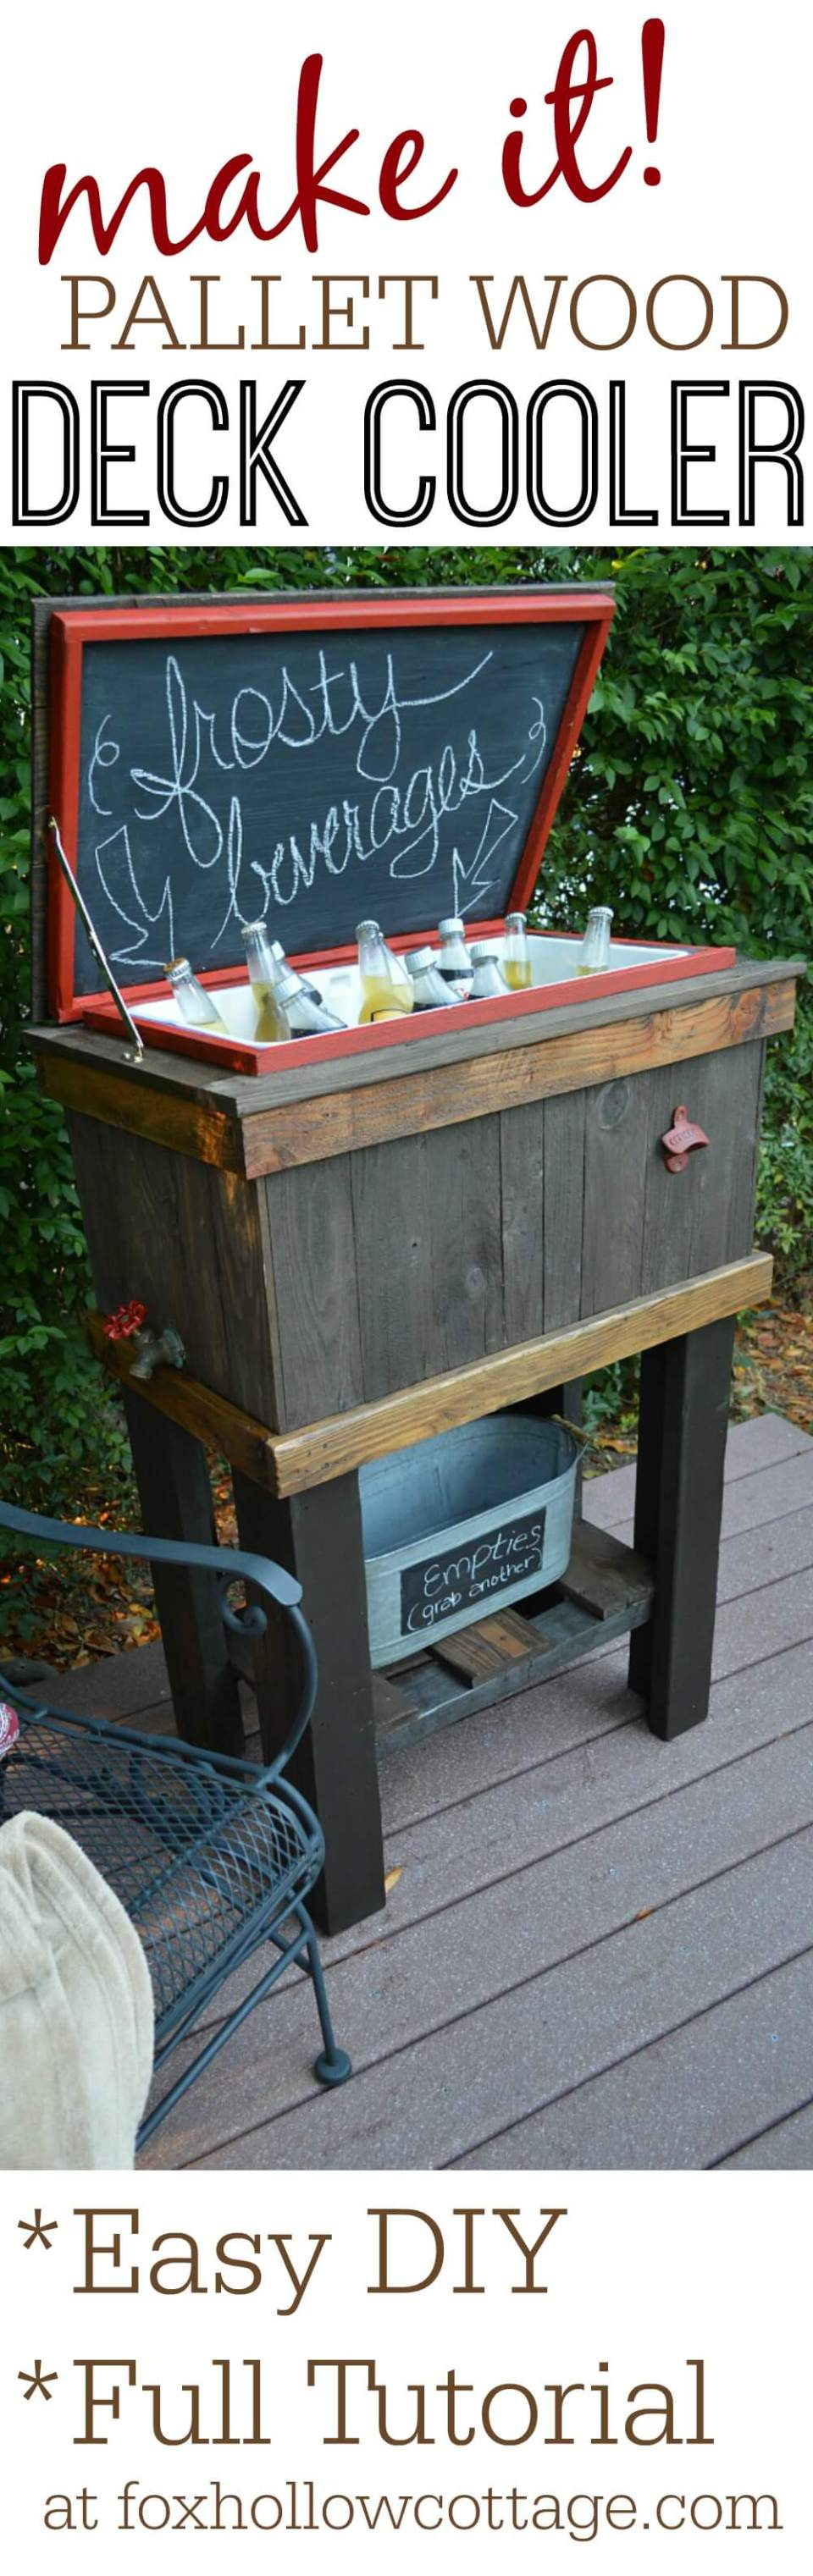 An Elevated DIY Cooler for Your Deck